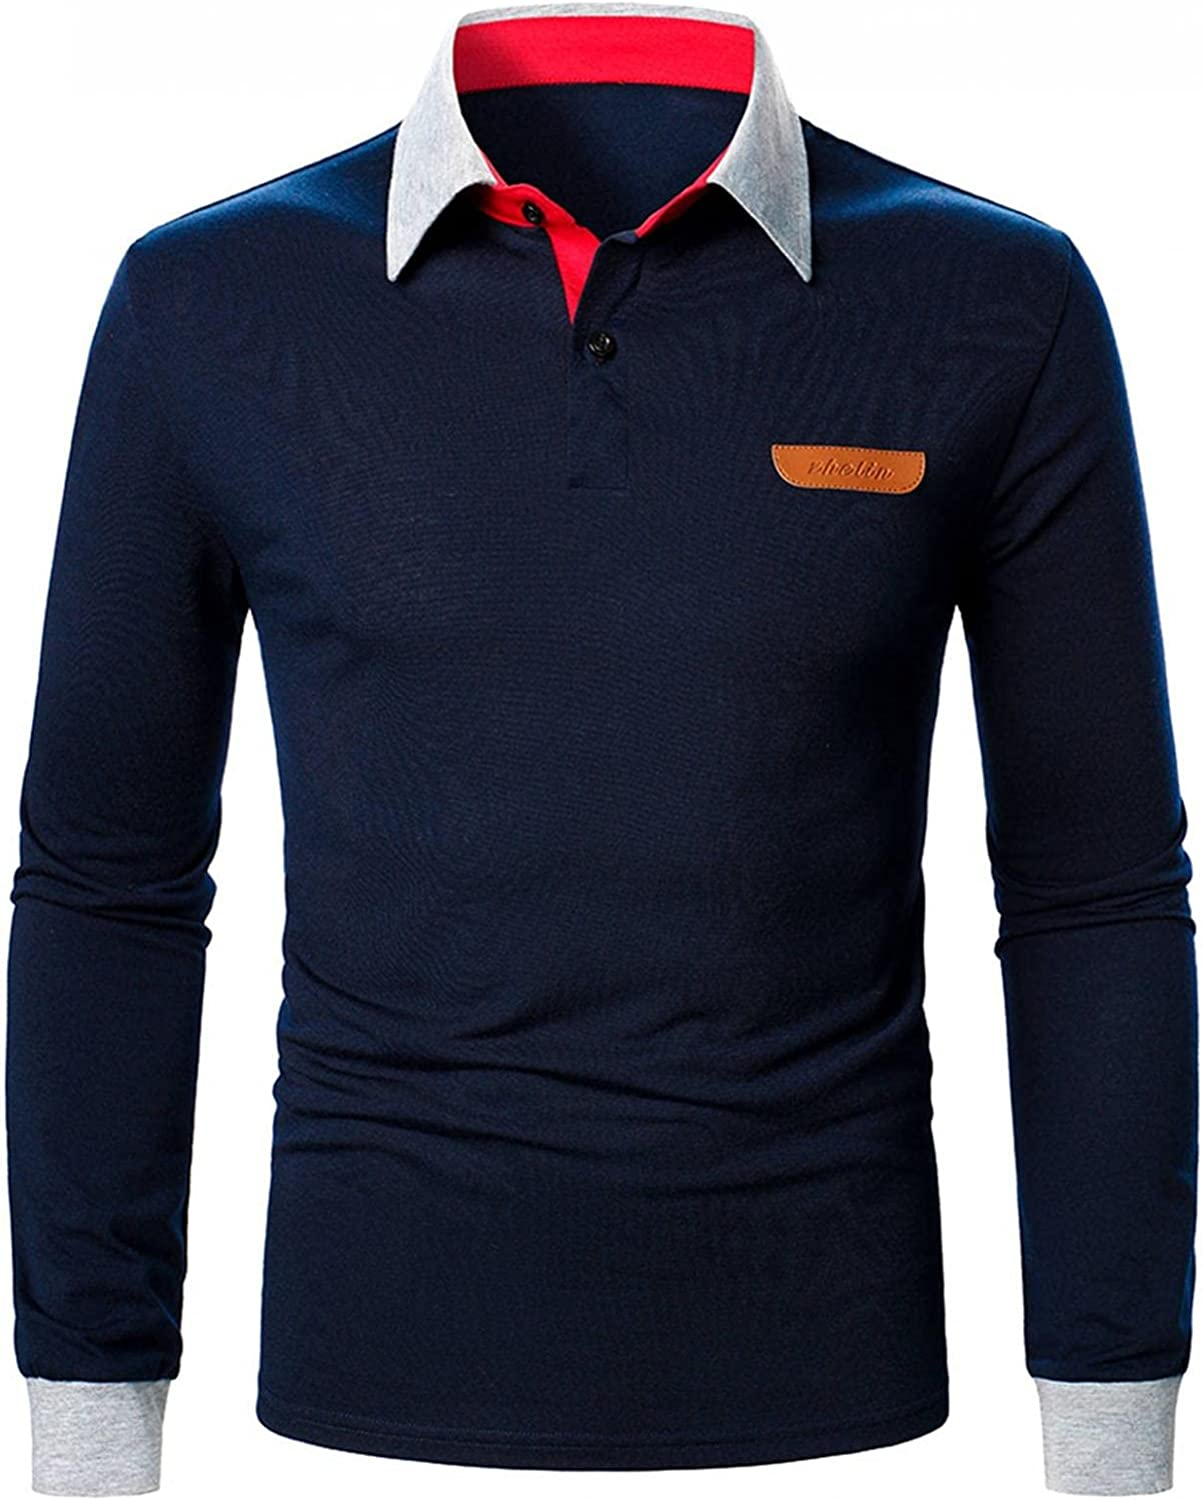 Men's Indianapolis Mall Polo Shirts Long Ranking TOP15 Sleeve Classic Golf Casual Sports T-Shirt